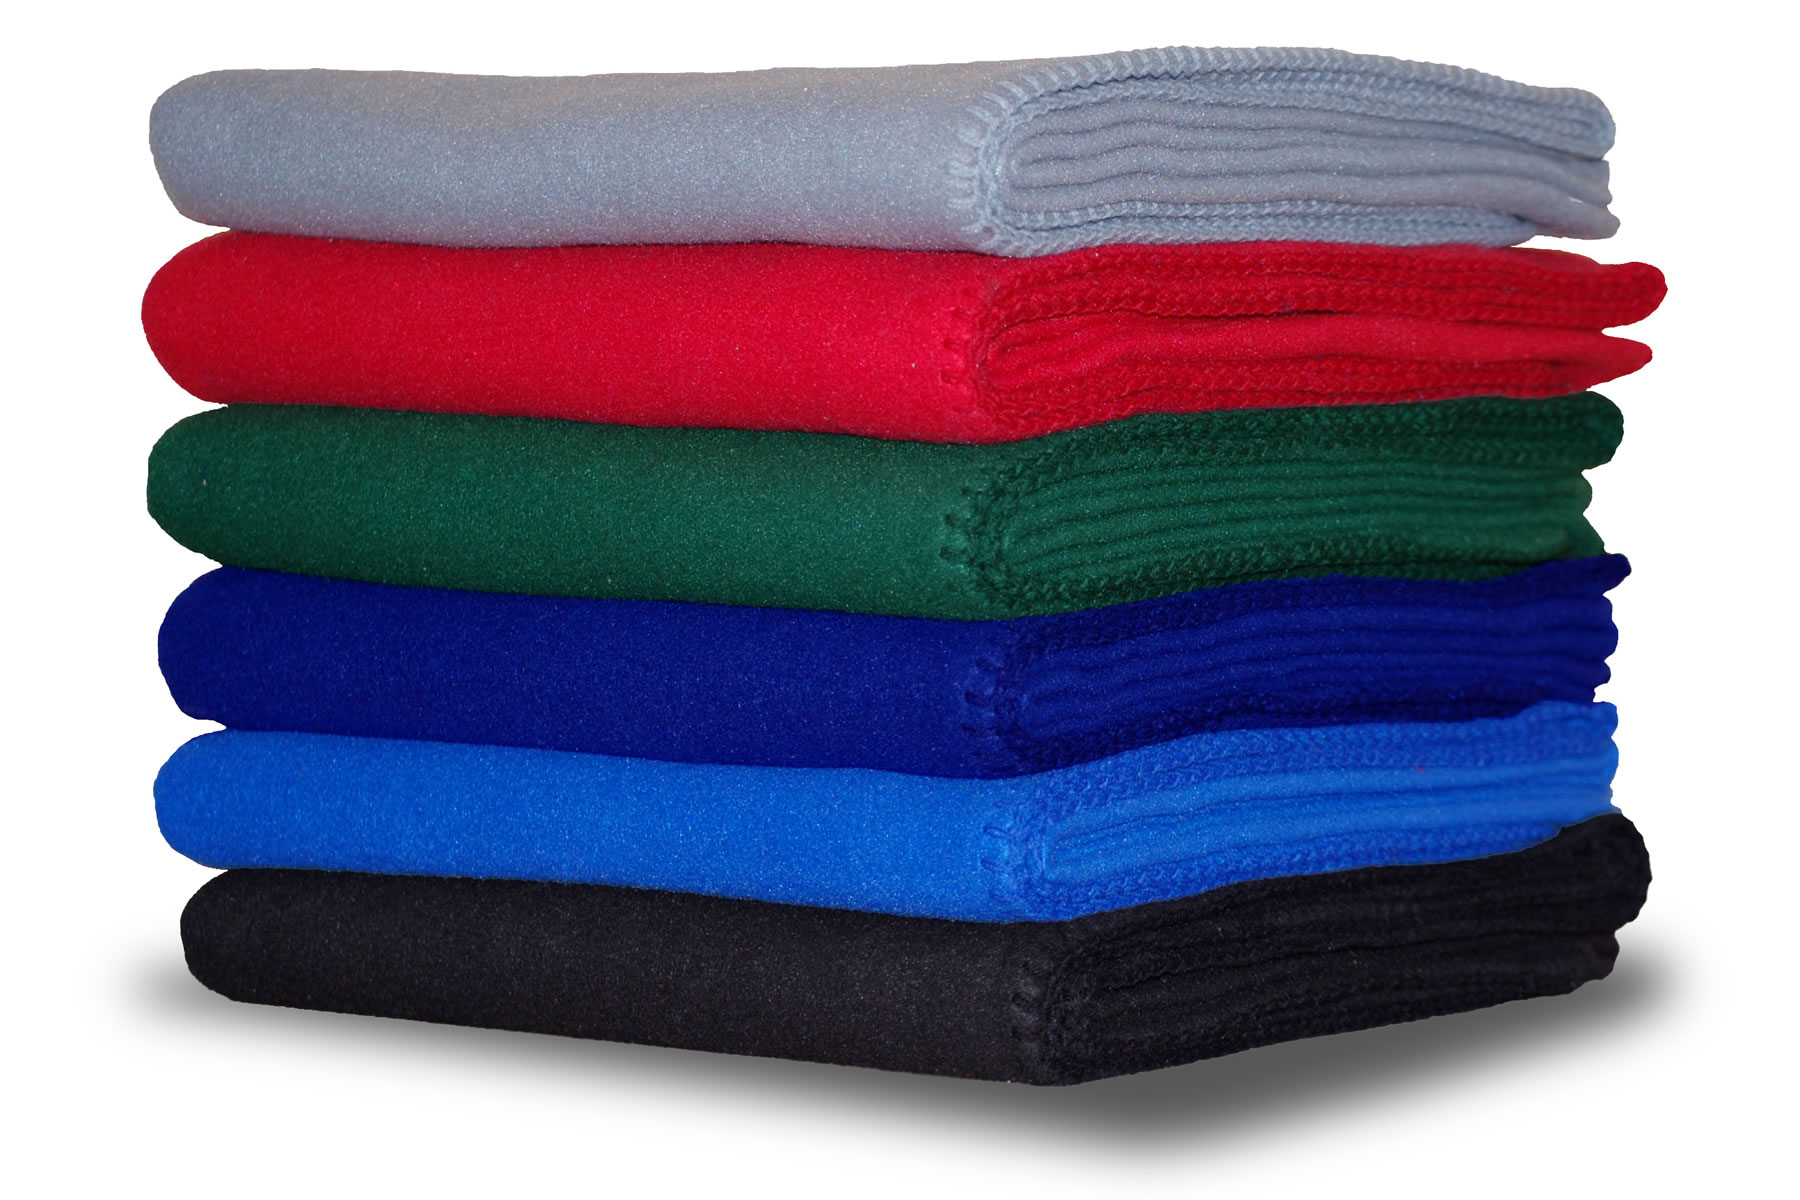 Discover Blankets & Throws on megasmm.gq at a great price. Our Bedding category offers a great selection of Blankets & Throws and more. Free Shipping on Prime eligible orders.